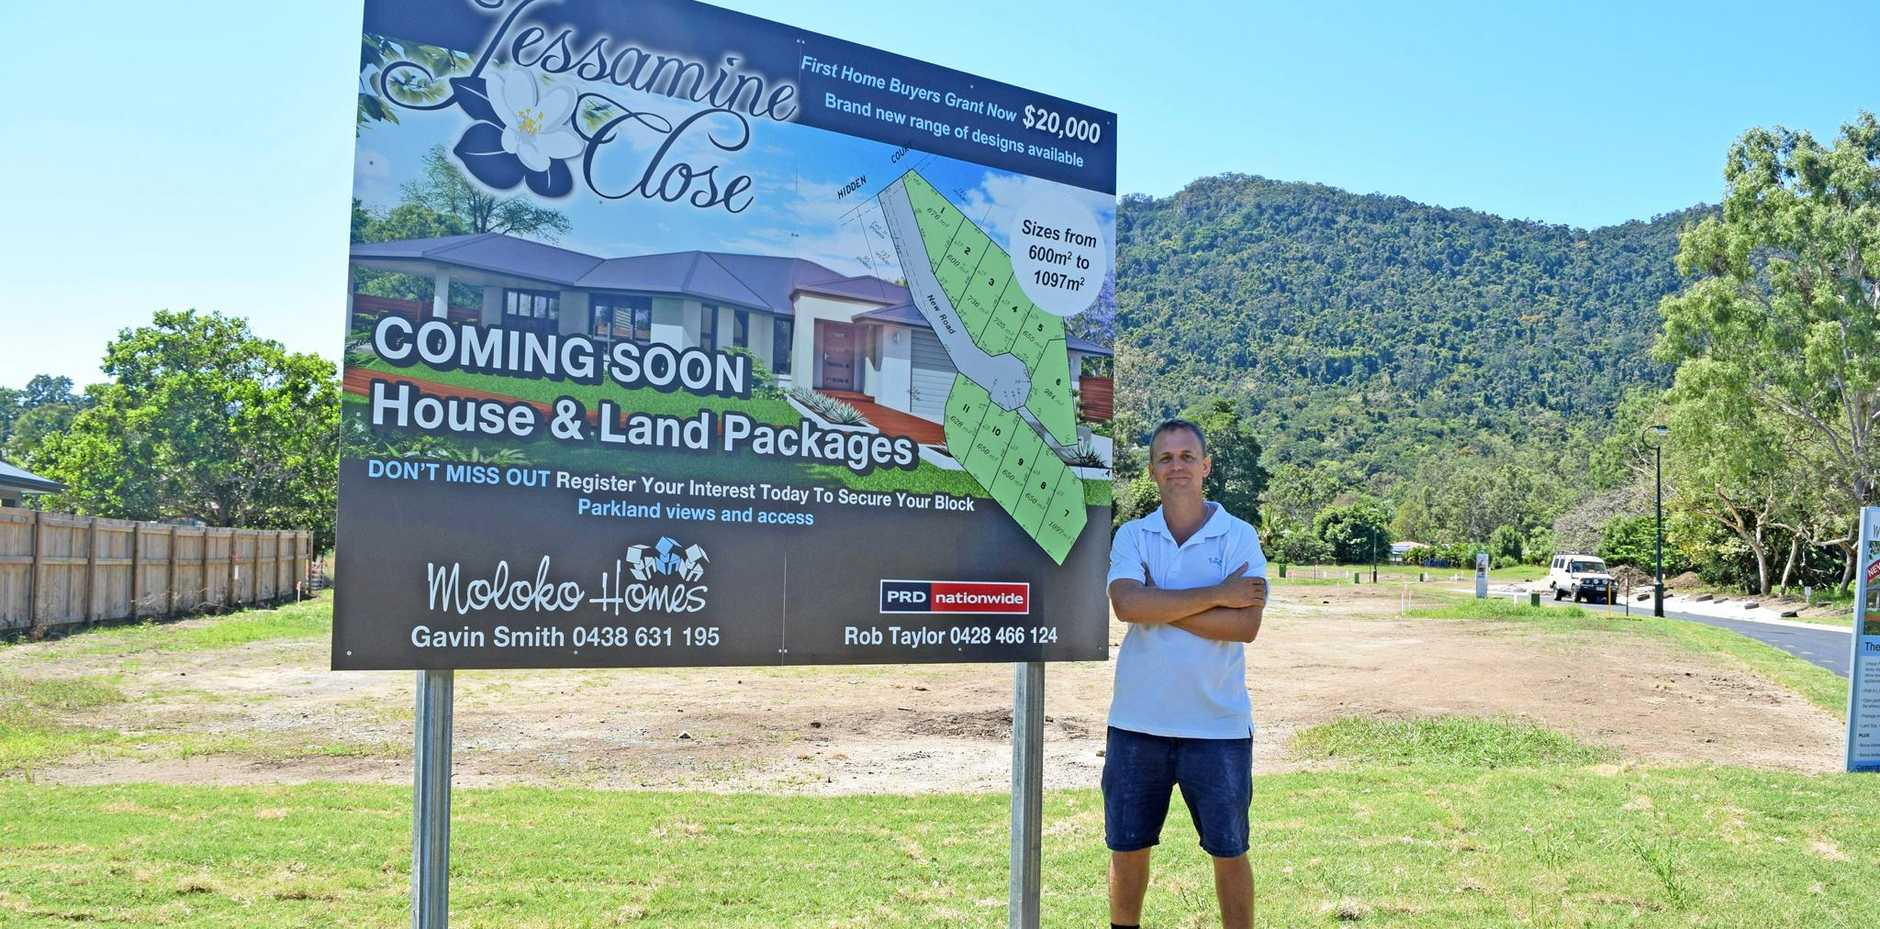 BEAUTIFUL VISTA: Gavin Smith standing on the land where 11 lots will be developed at Whitsunday Lakes.